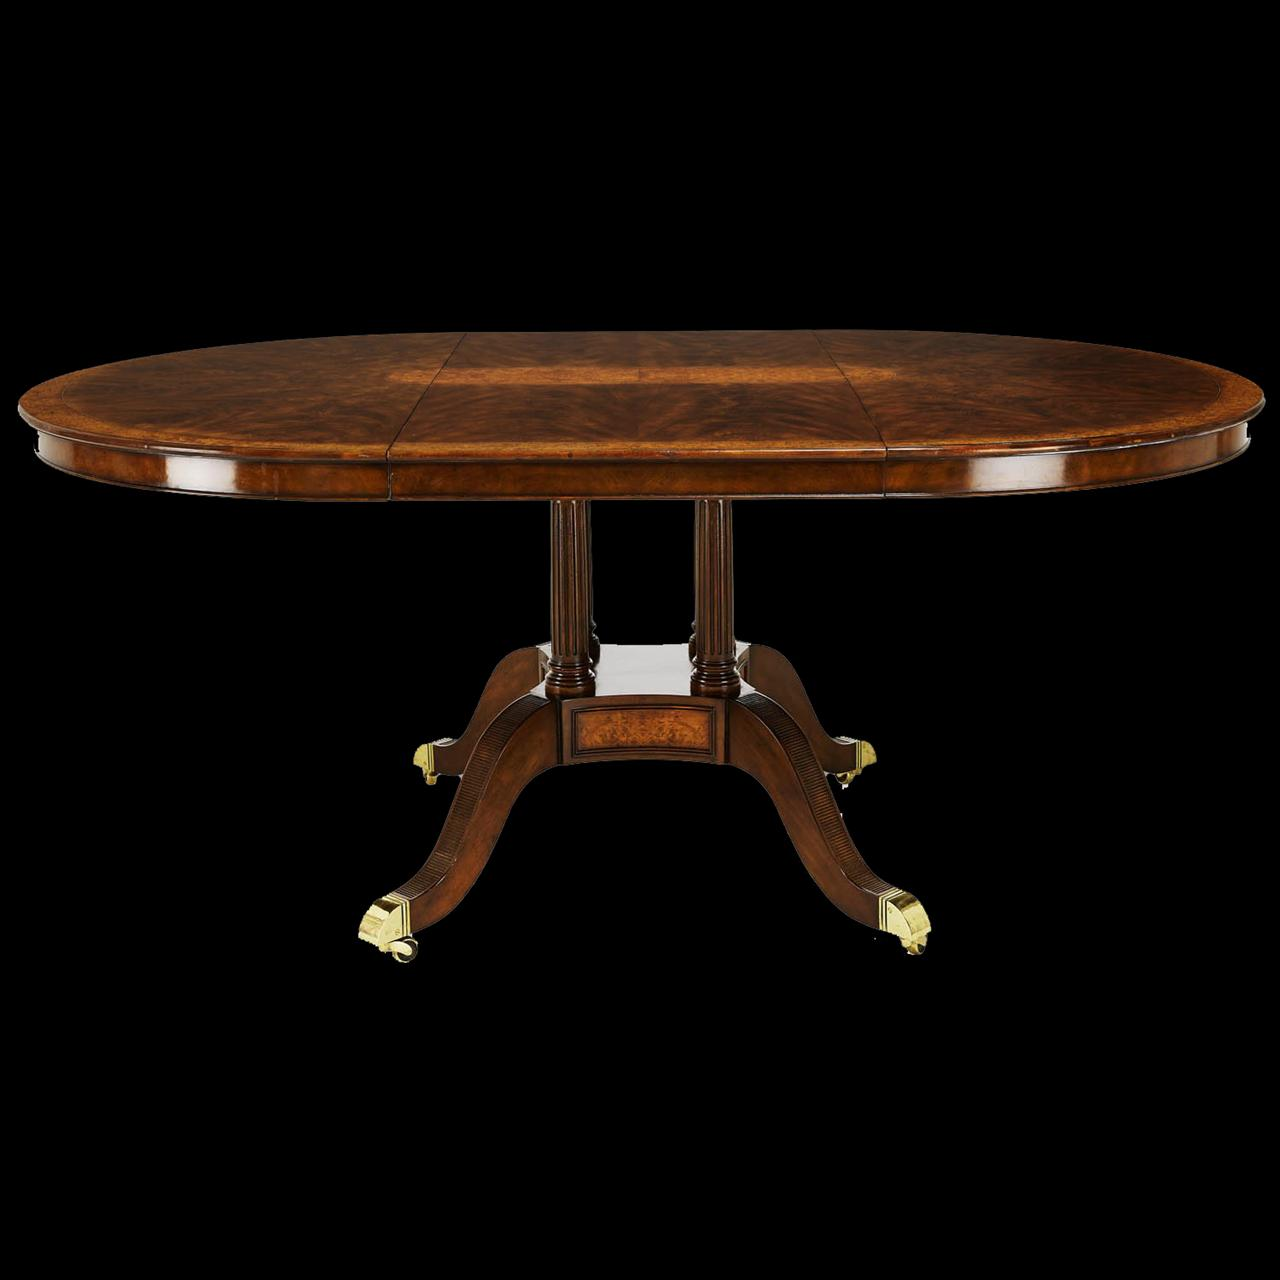 48 Inch Round to Oval Walnut and Yew Banded Dining Table  : 48 inch round to oval walnut dining table and leaf opens to 72 inches 12408 from www.antiquepurveyor.com size 1280 x 1280 jpeg 66kB